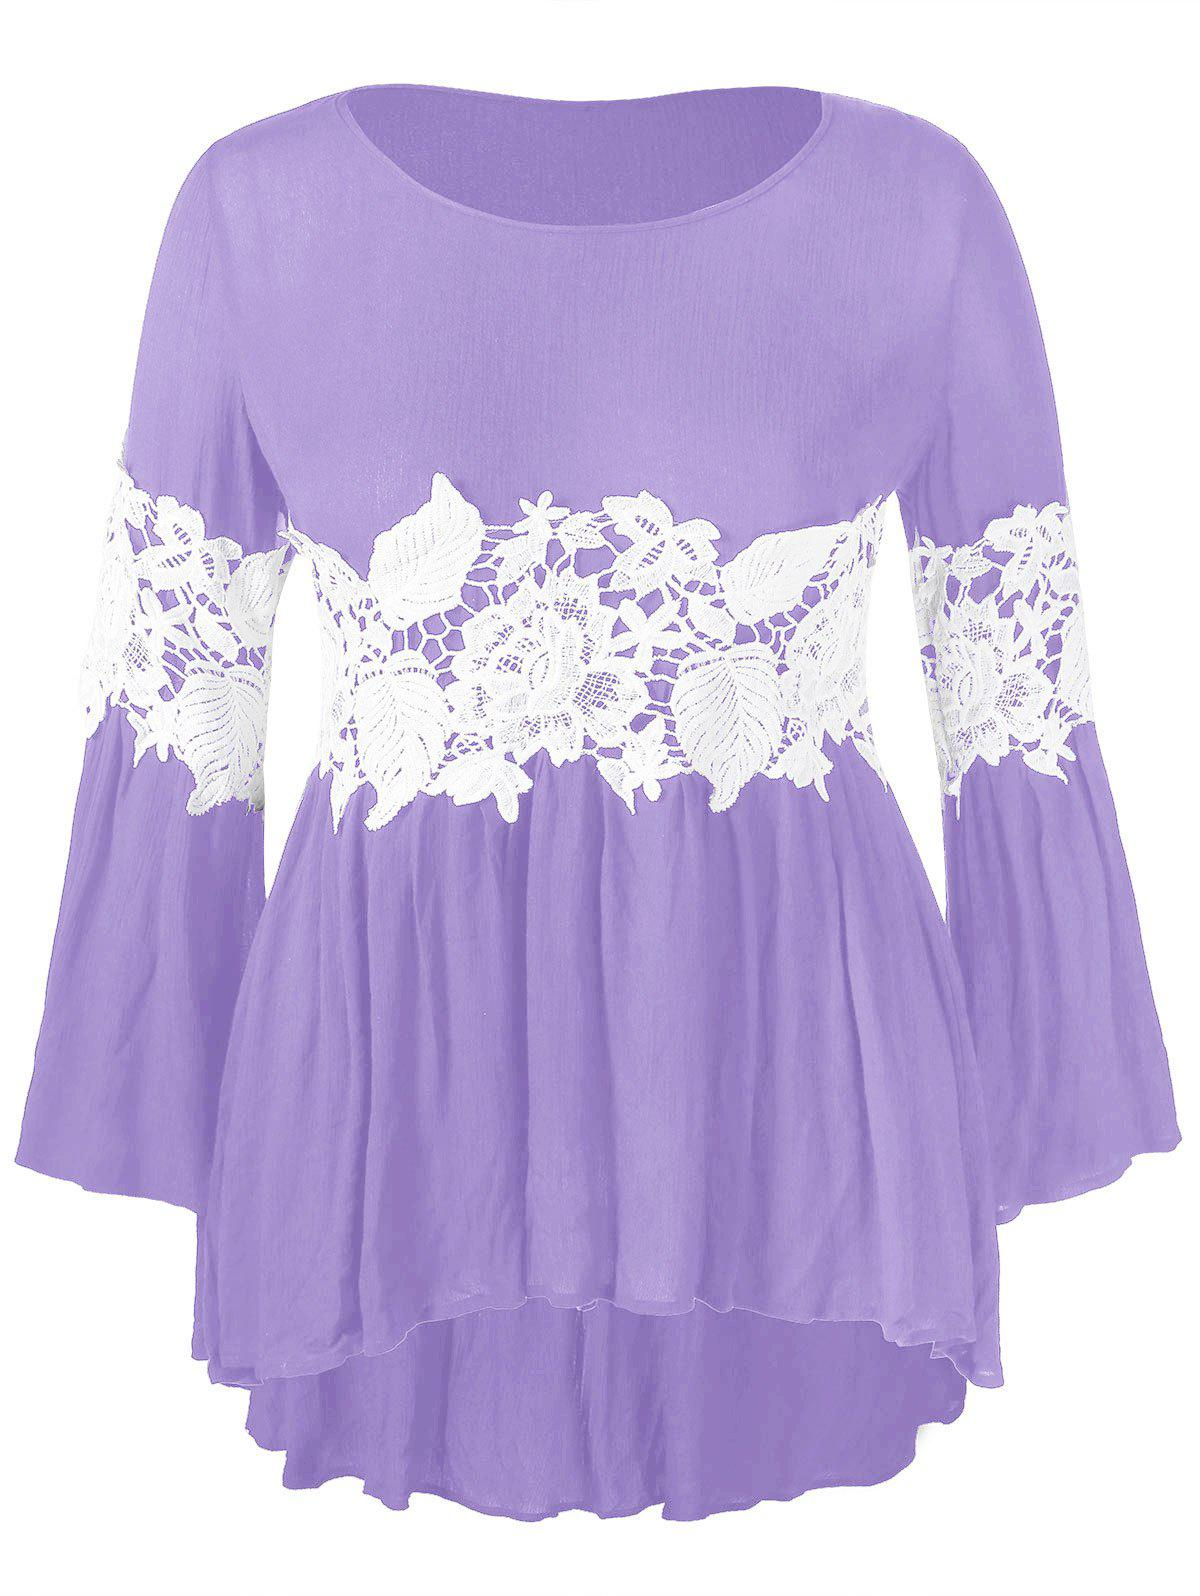 Plus Size High Low Tee with Lace Panel - MAUVE L